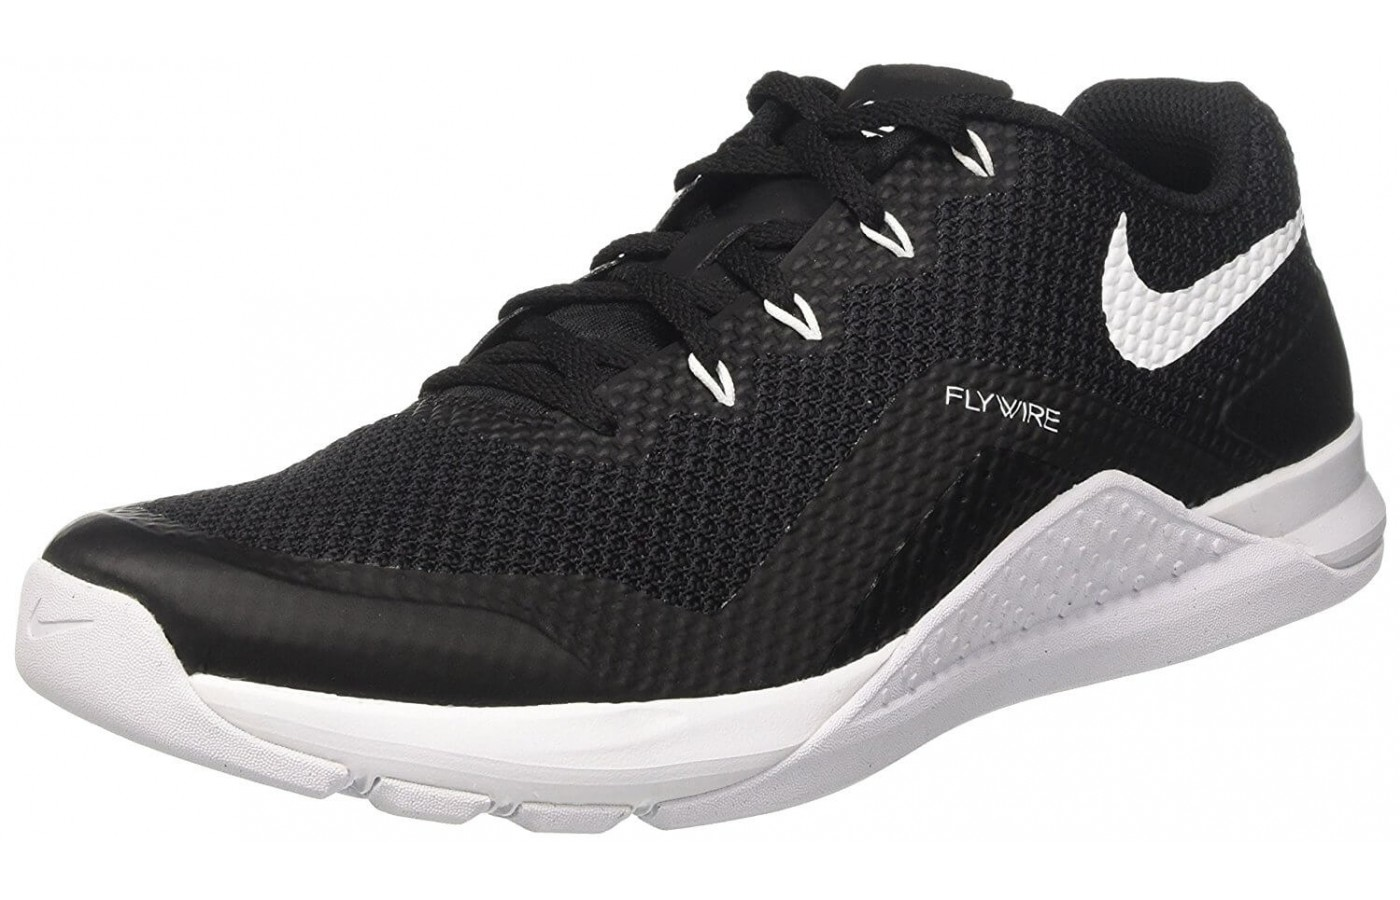 The Nike Metcon Repper DSX features Phylon midsole cushioning